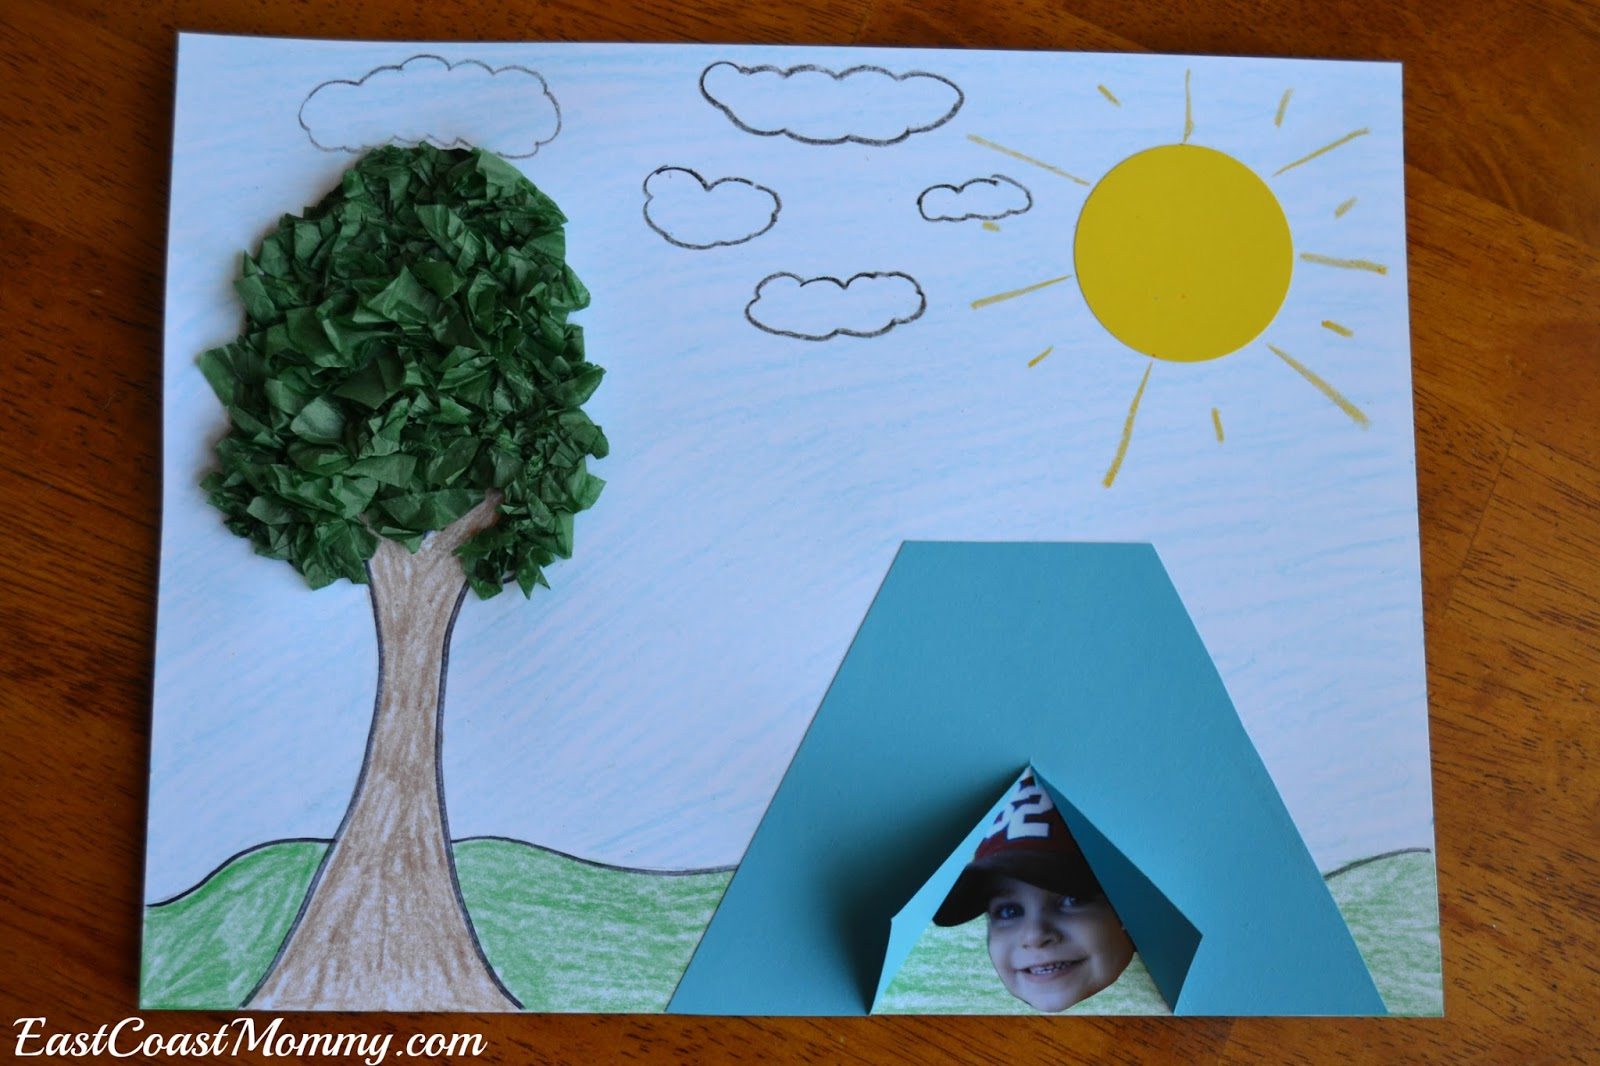 2) Glue a picture of a child inside the tent. 3) Draw a tree and create leaves by gluing on crumpled 1-inch tissue paper squares. & East Coast Mommy: Camping Crafts and Activities